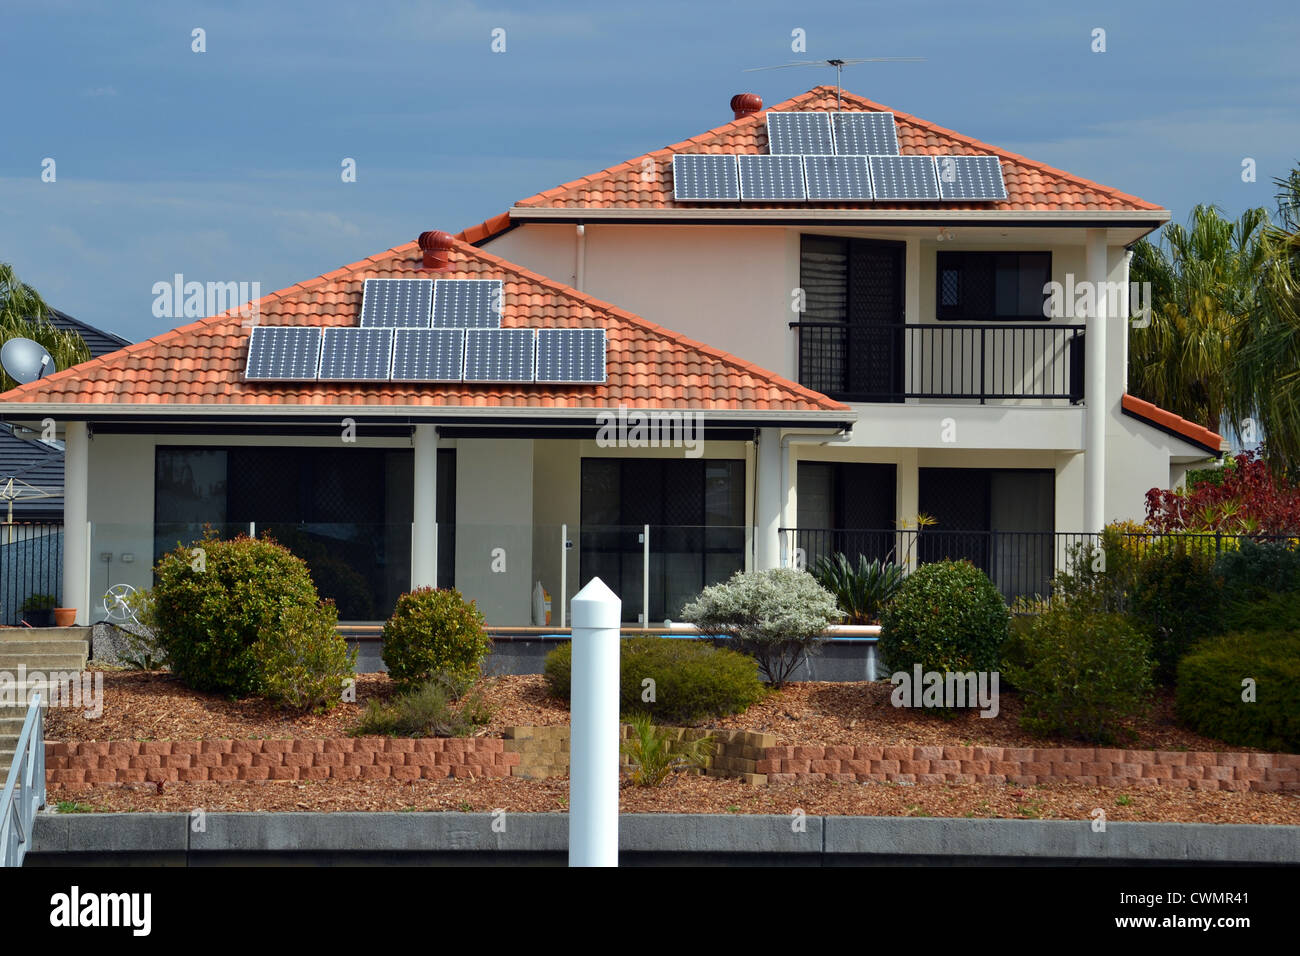 a house on the canal with solar panels - Stock Image